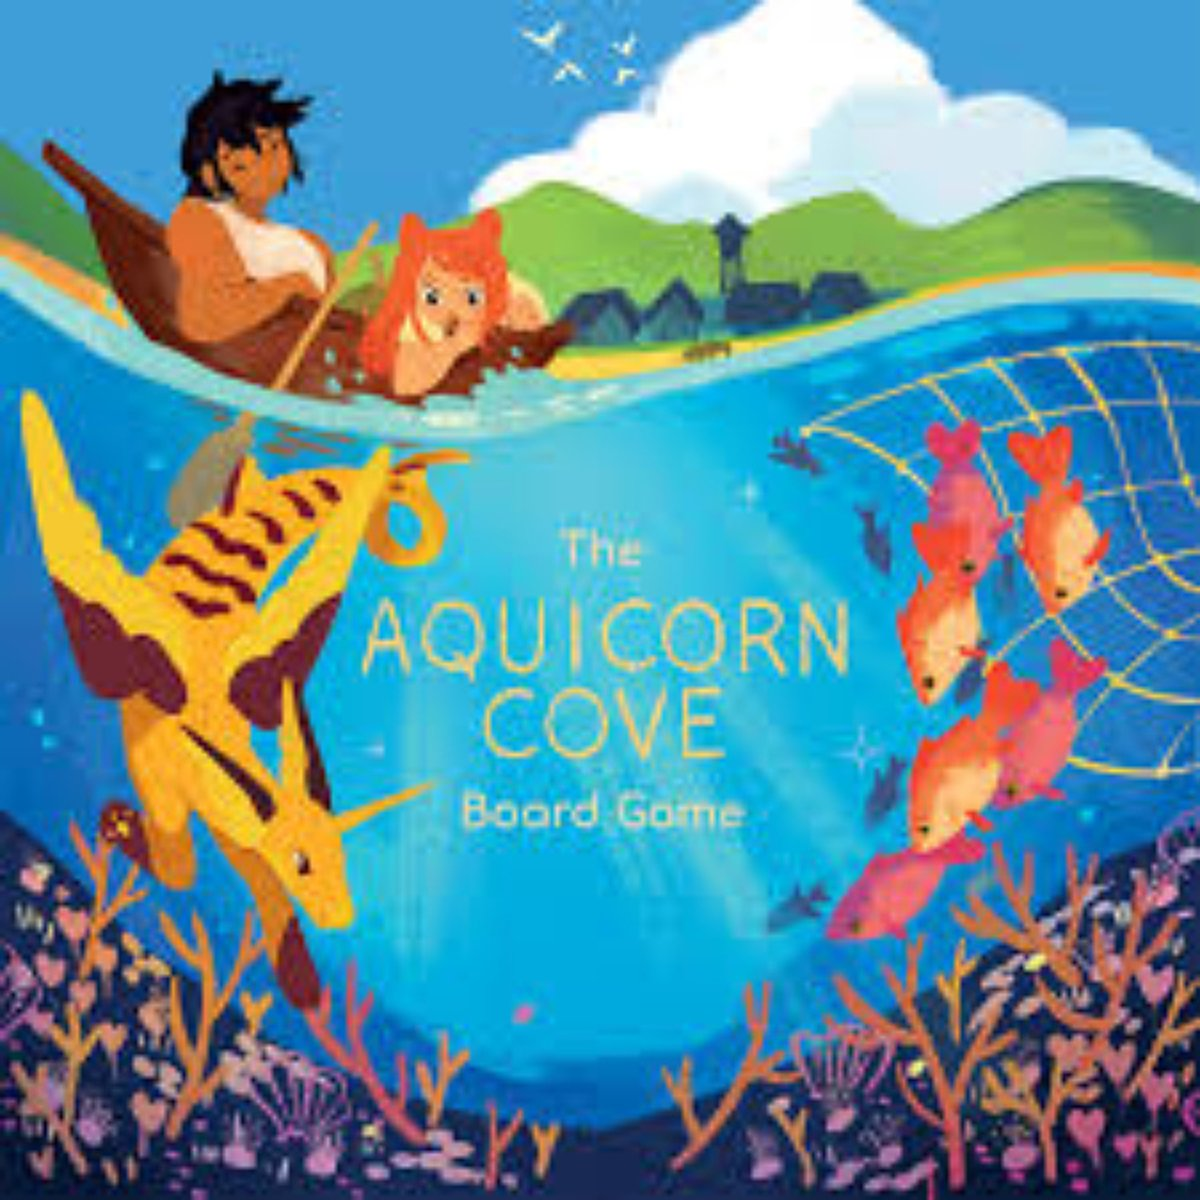 The aquicorn cove